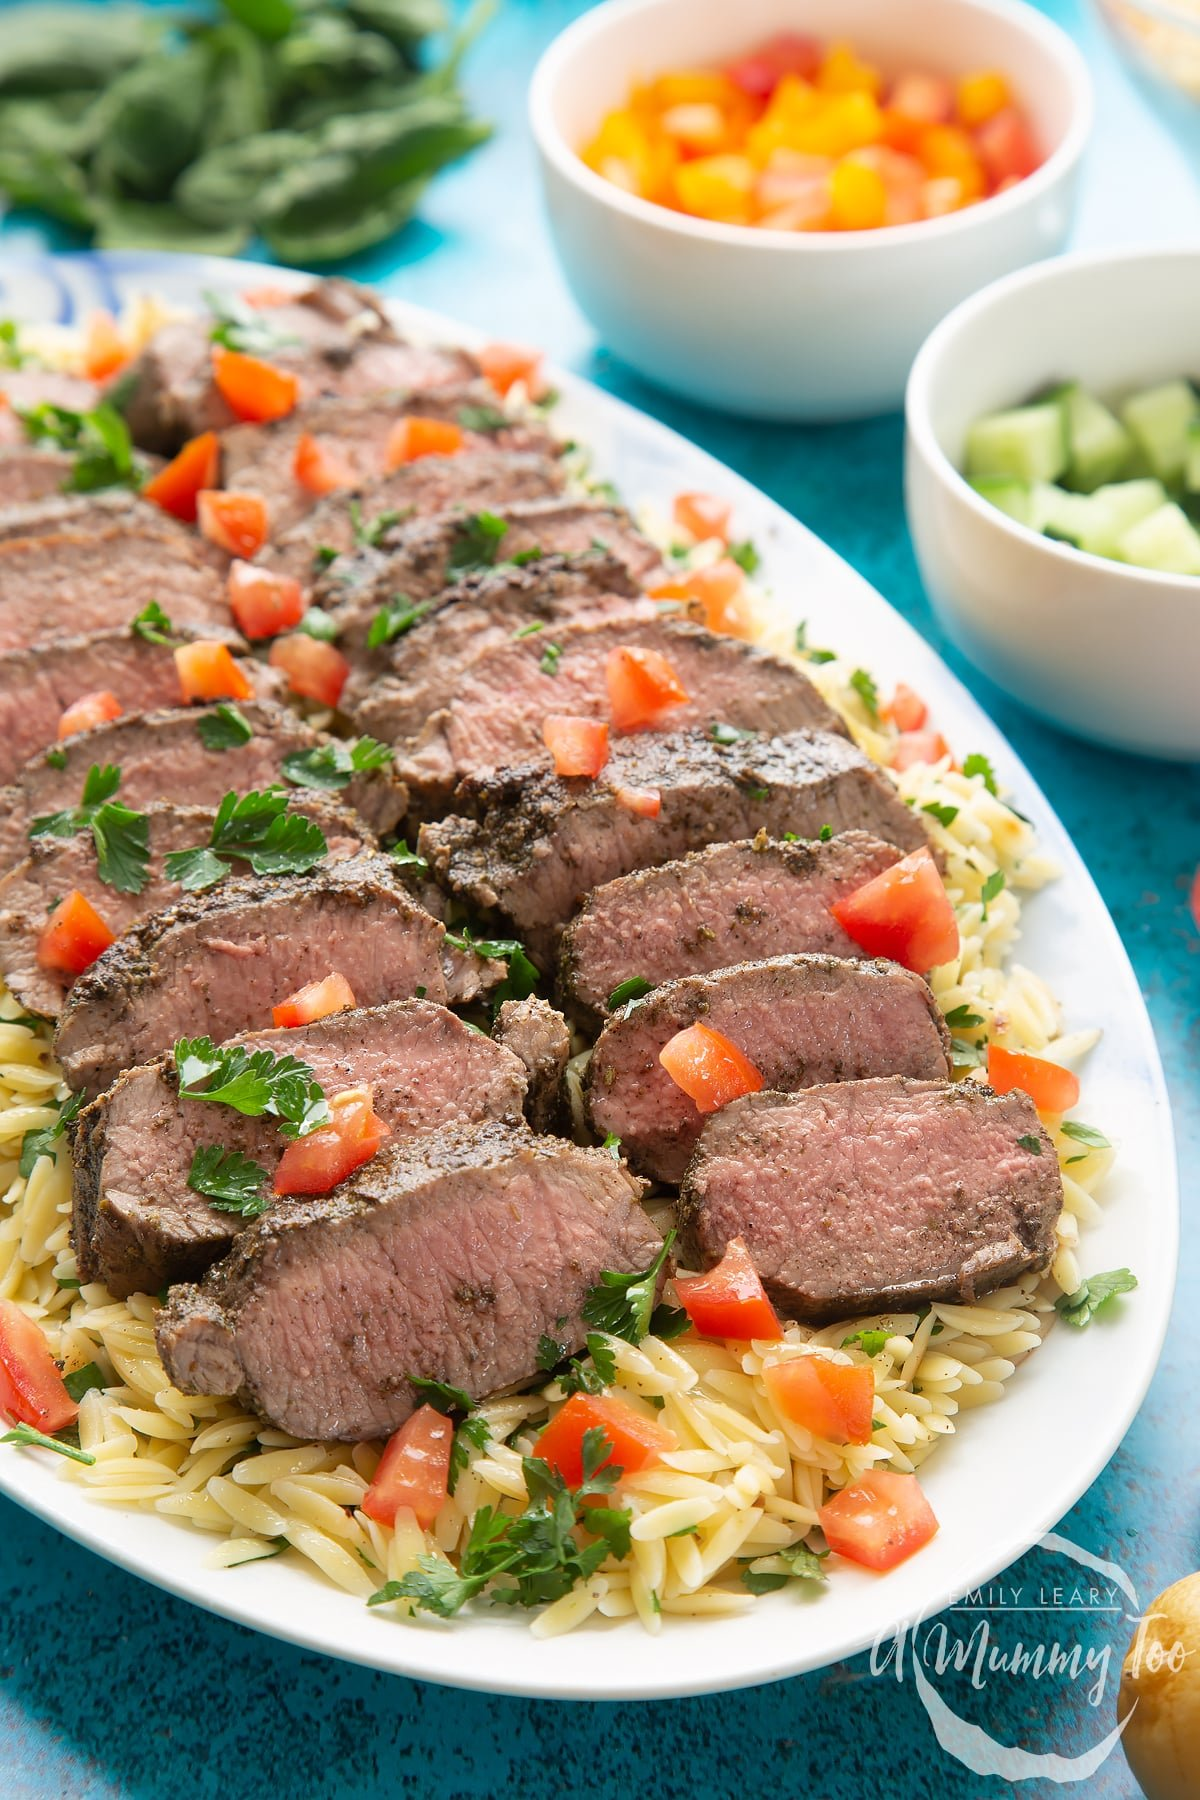 Slices of herby lamb arranged on a bed of orzo on an oval platter.